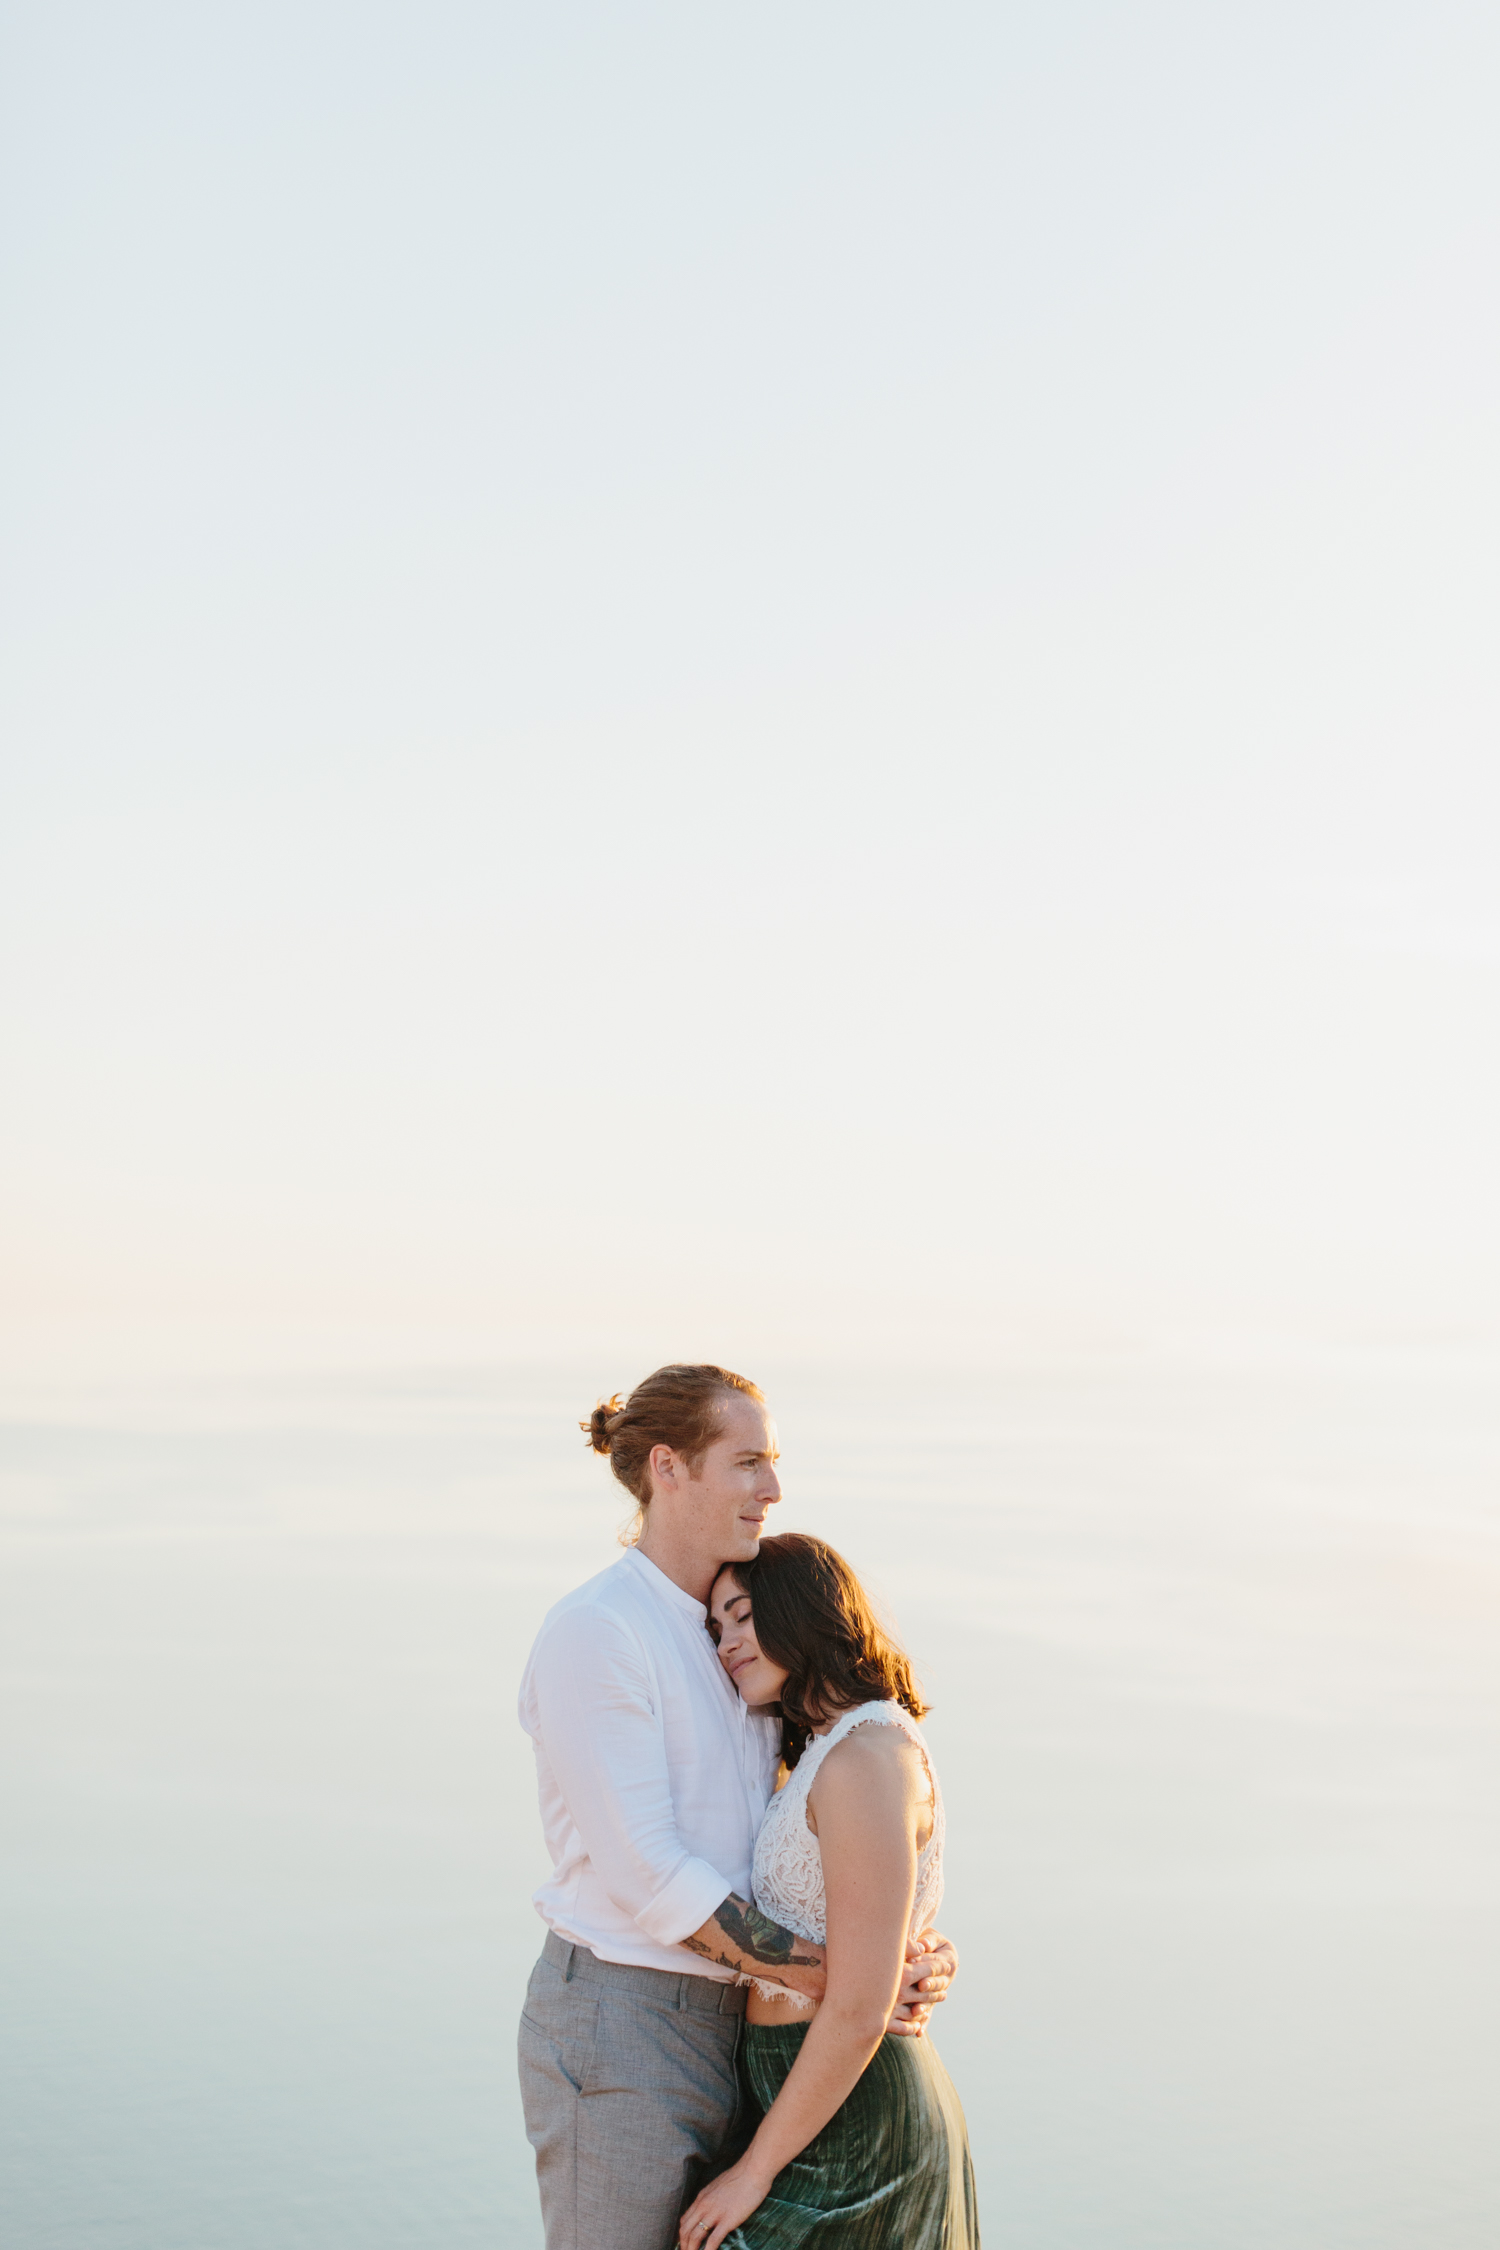 Sleeping Bear Dunes Elopement Wedding Photography by Mae Stier Northern Michigan Photographer-018.jpg